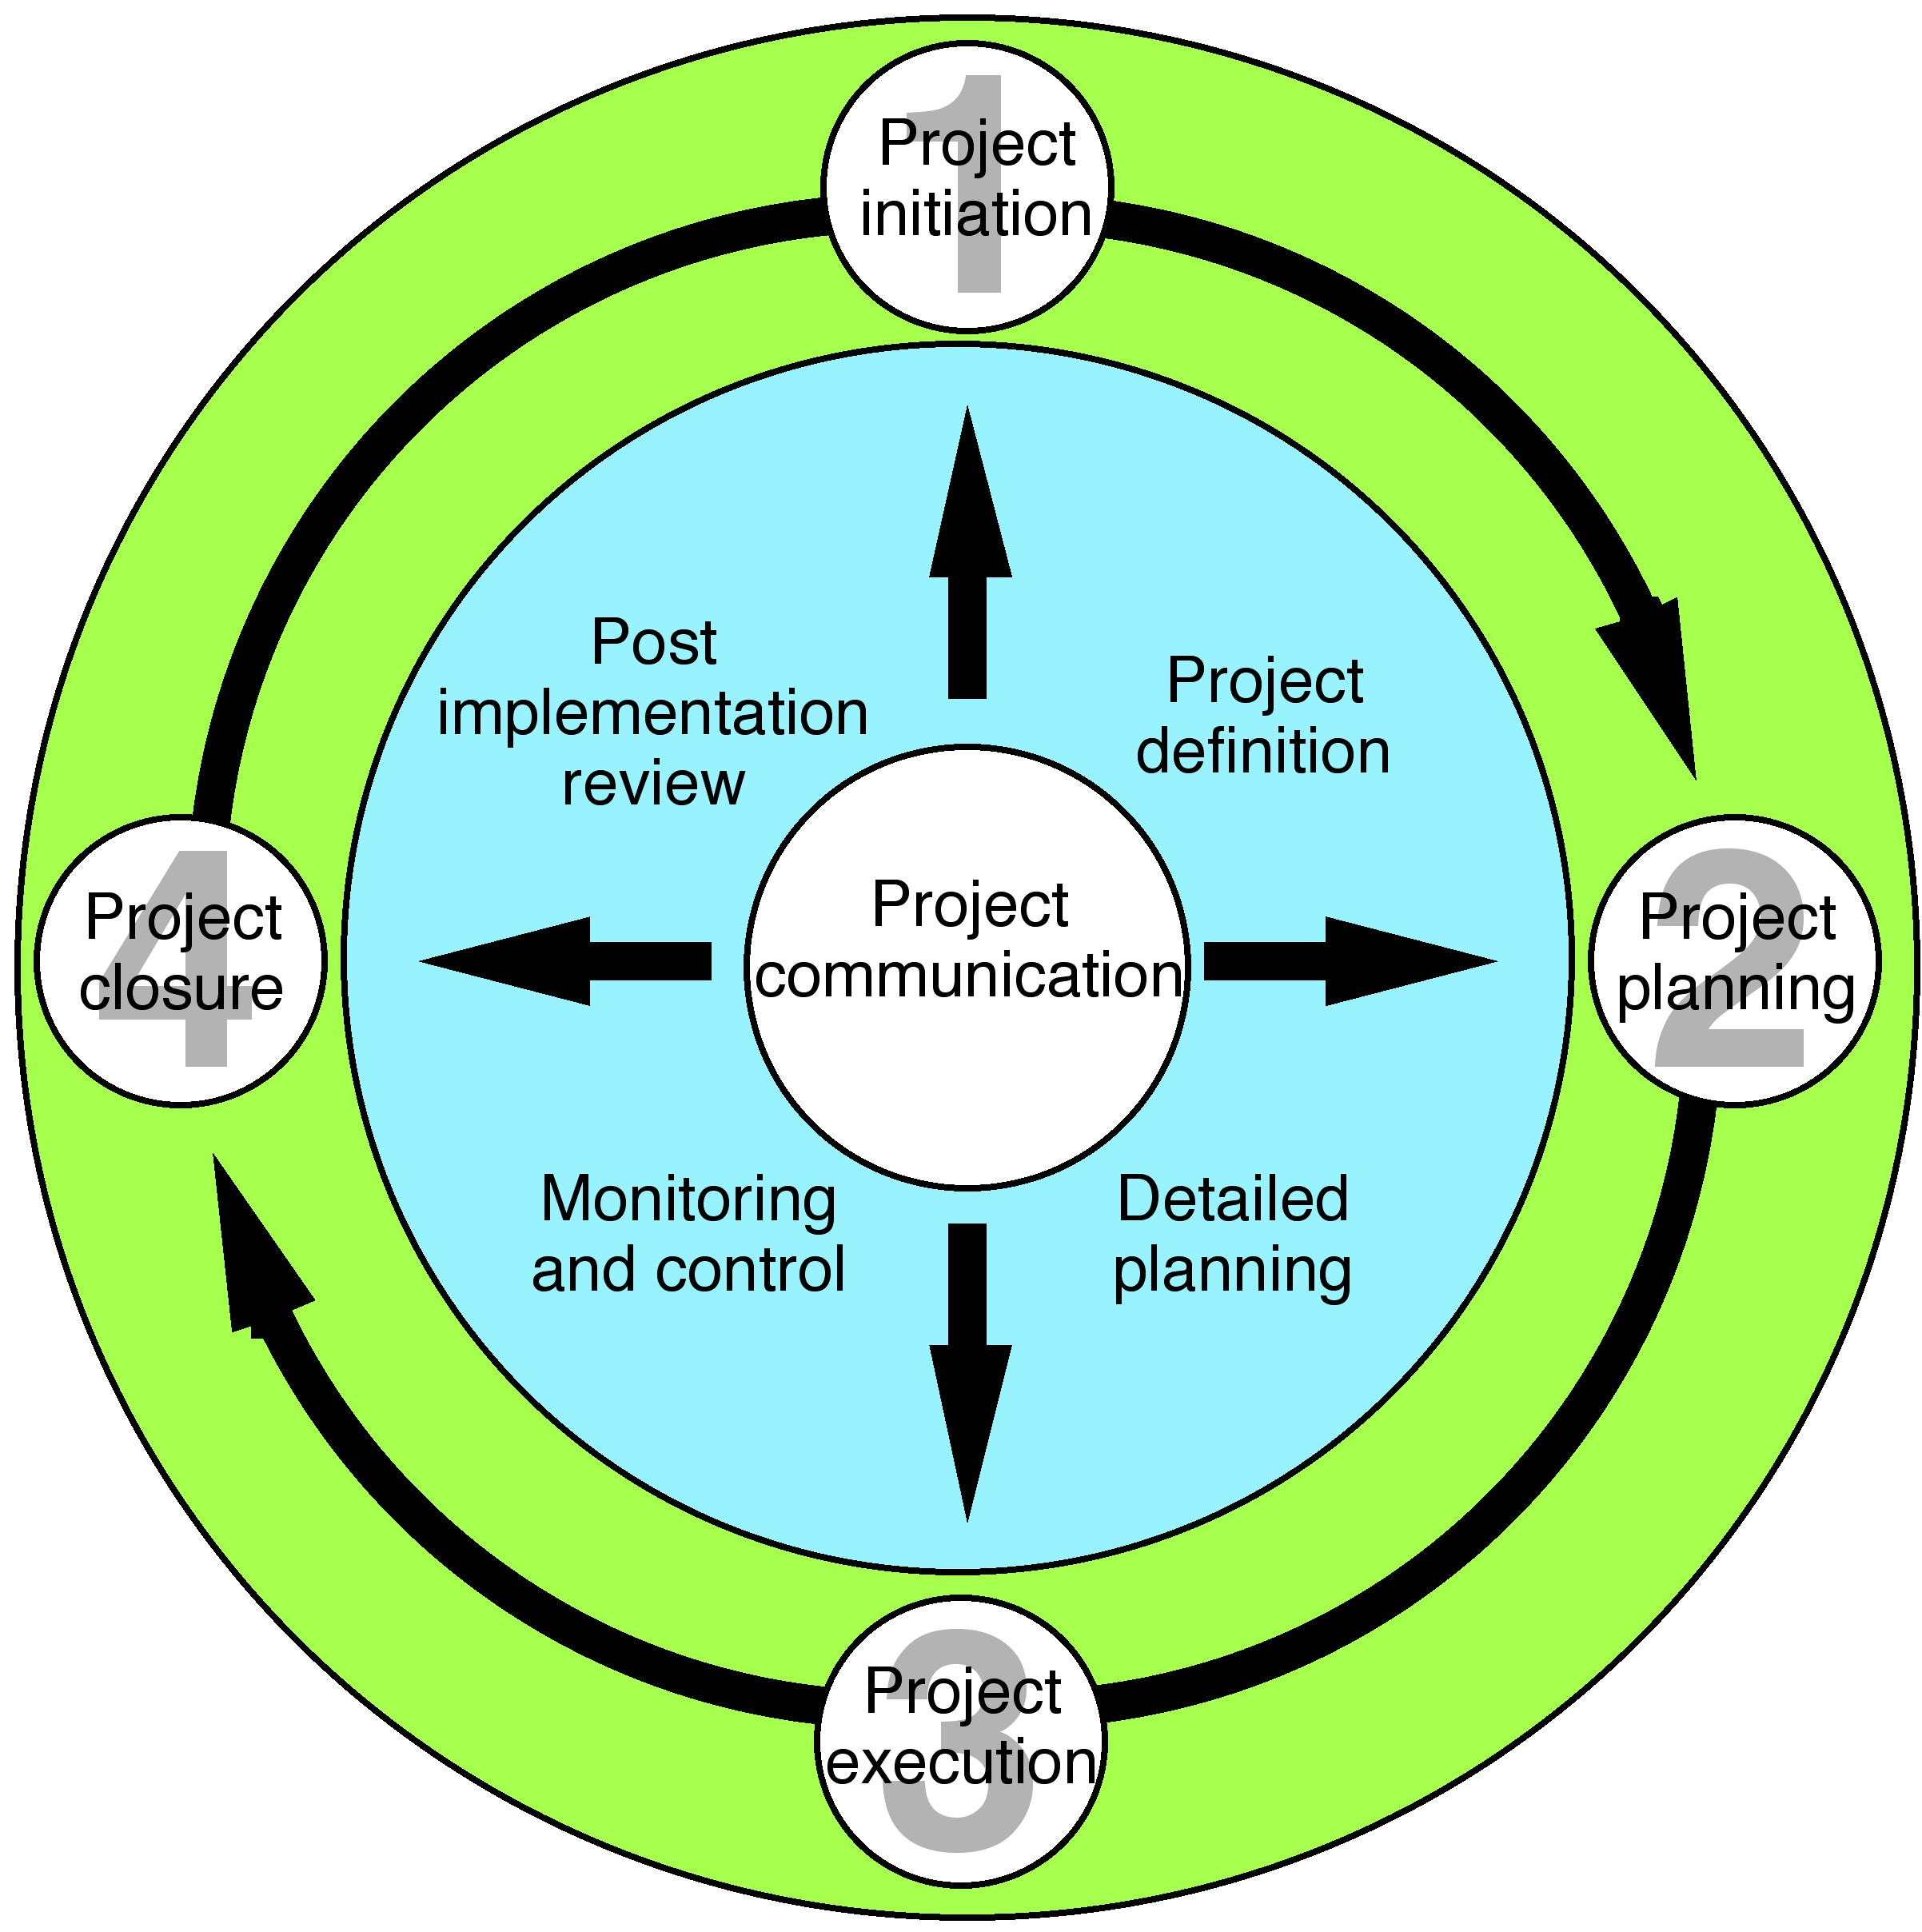 Initiation Phase, The Project Life Cycle, By OpenStax